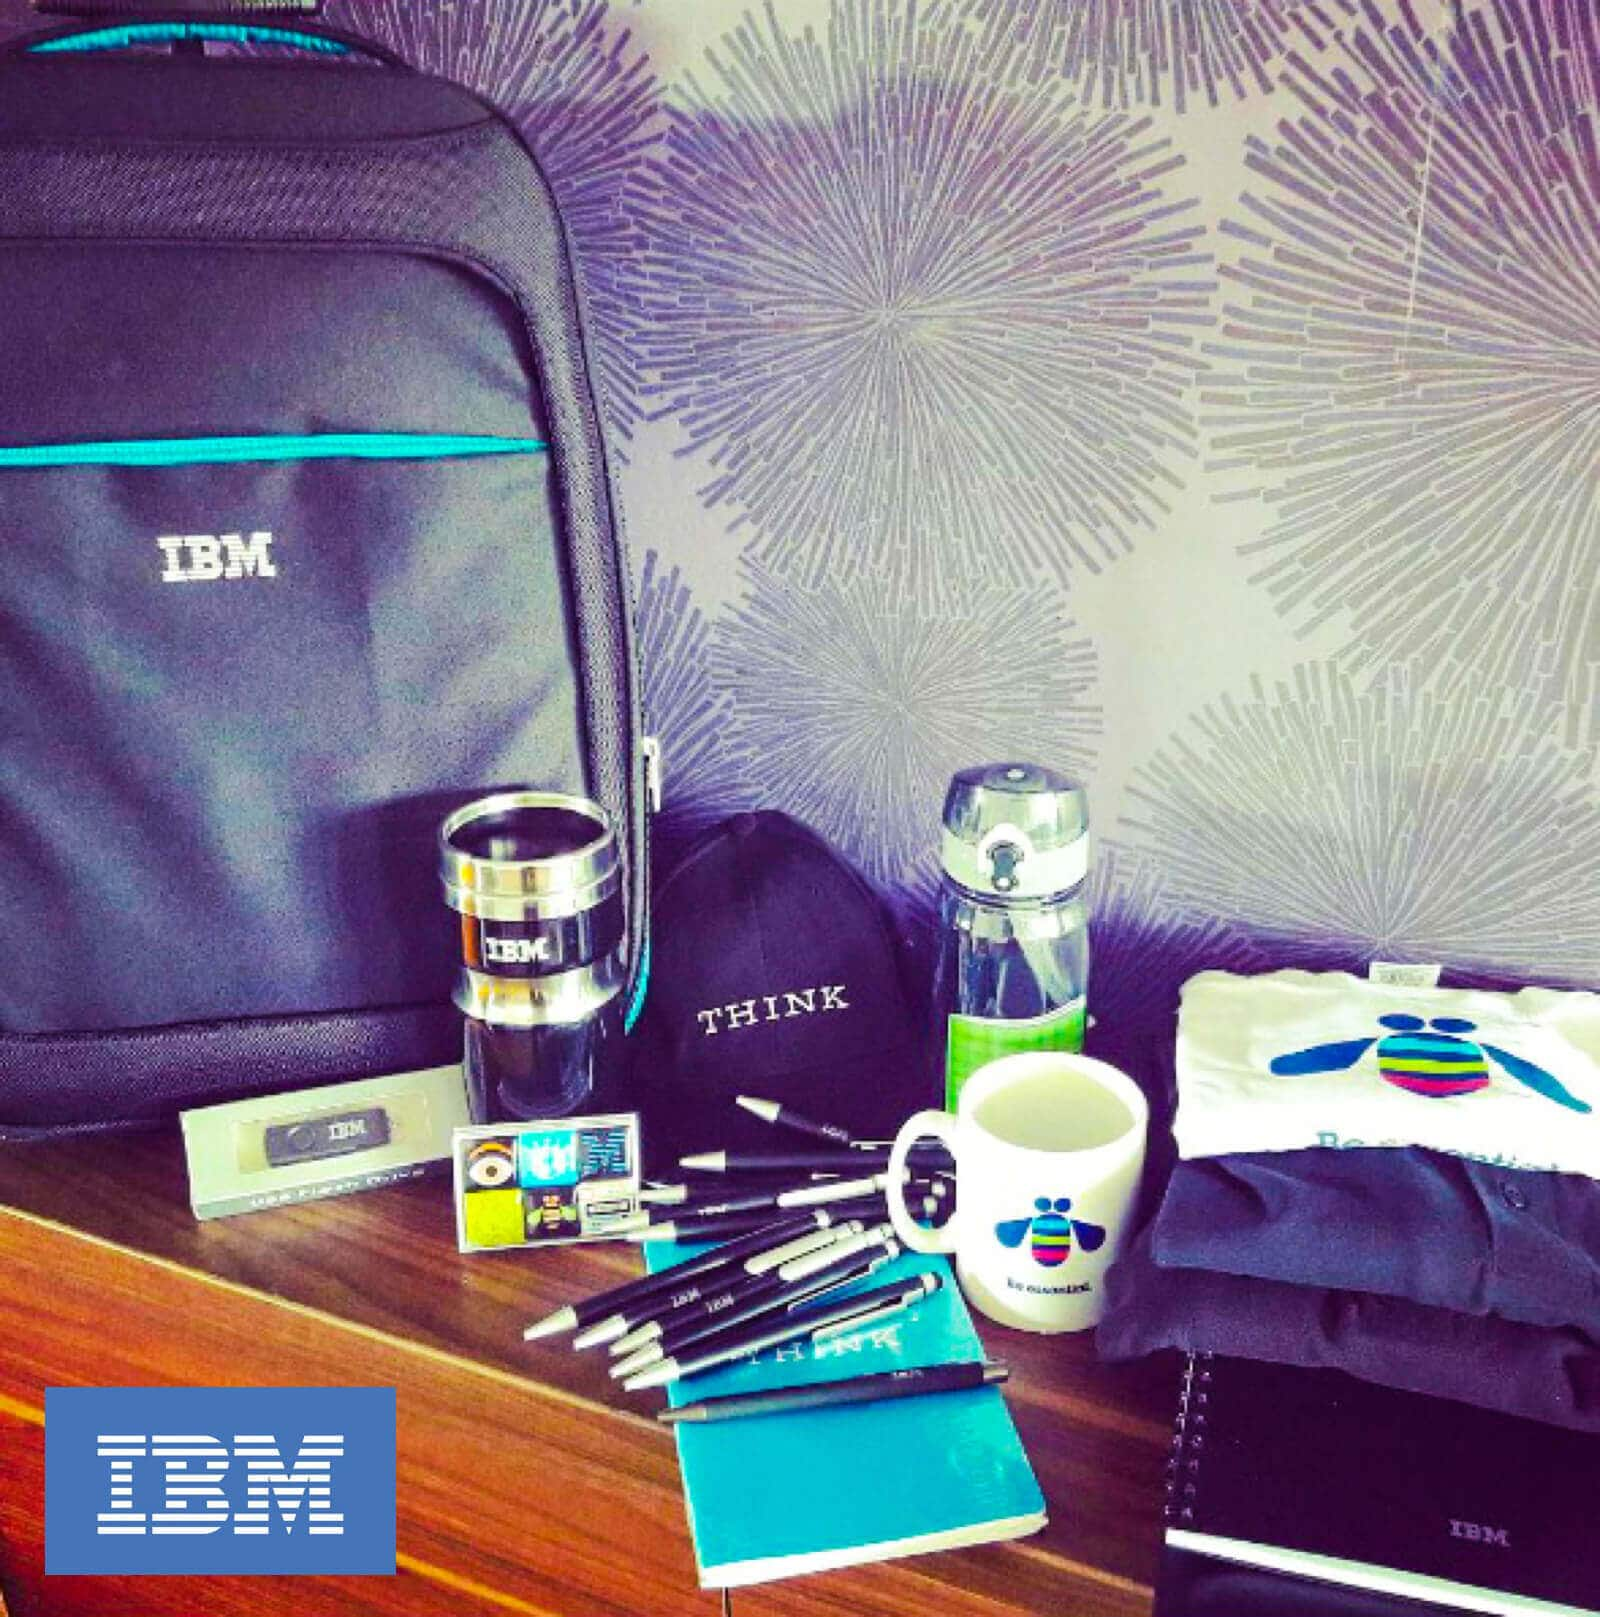 ibm welcome package for new employees sample